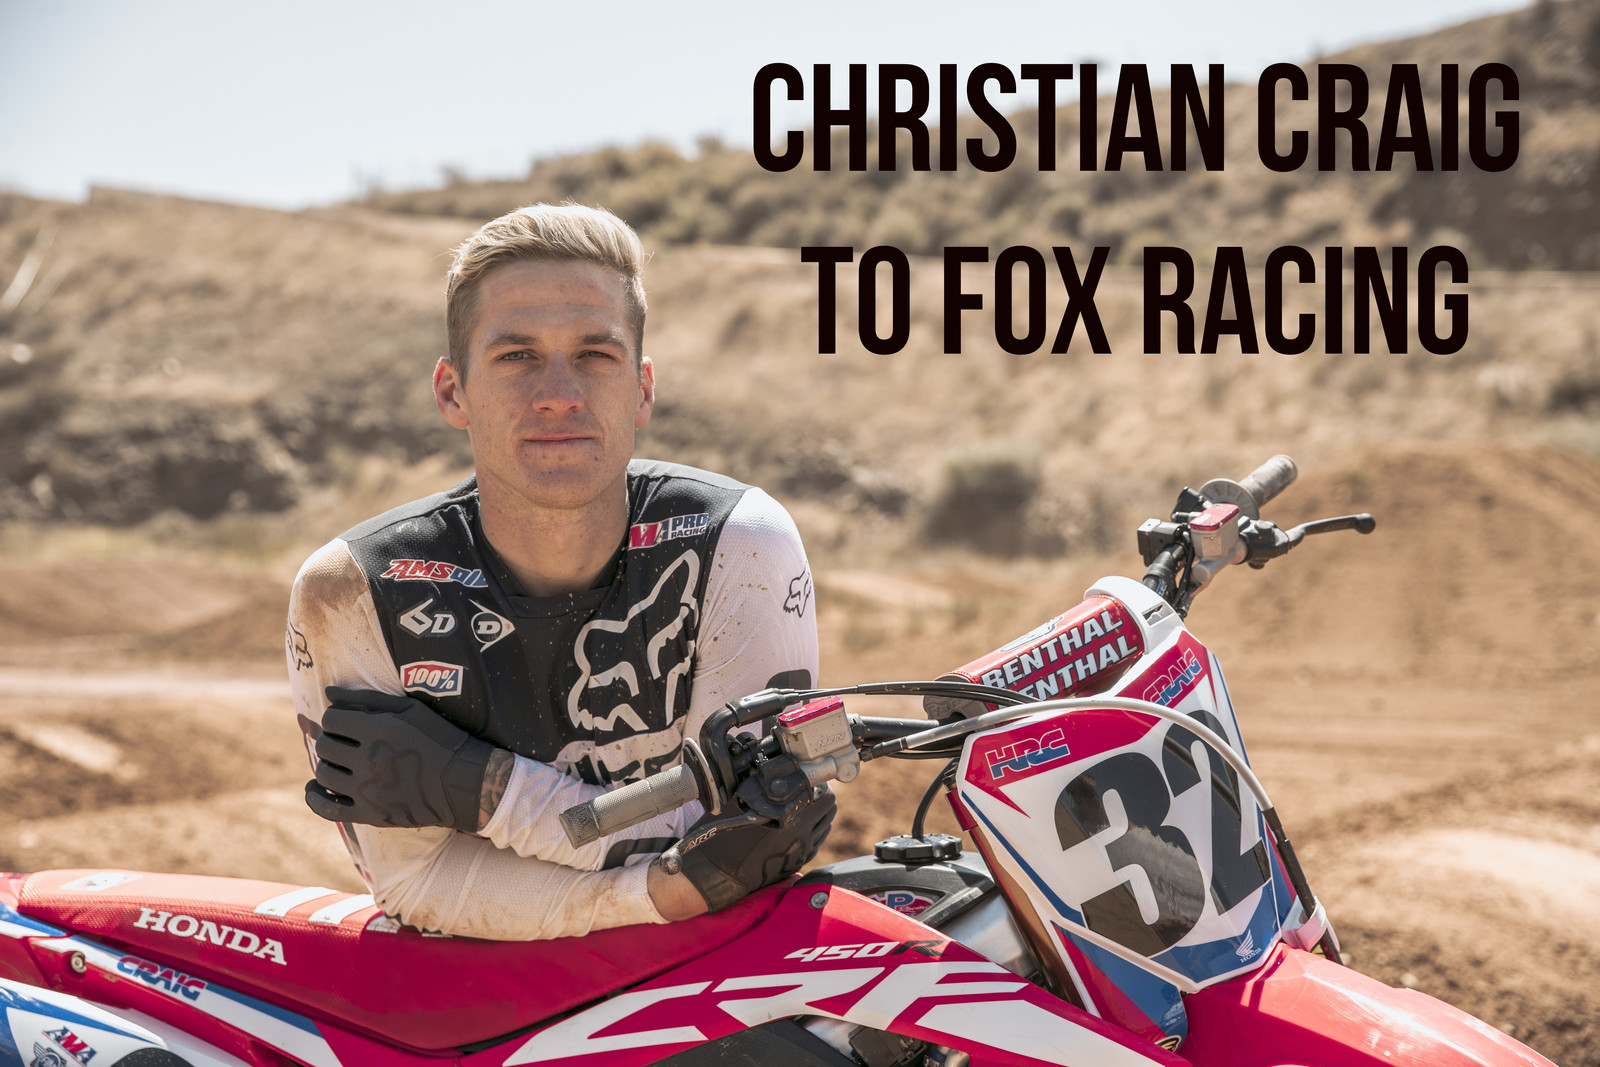 Christian Craig to Wear Fox Racewear for 2018 Pro Motocross Championship